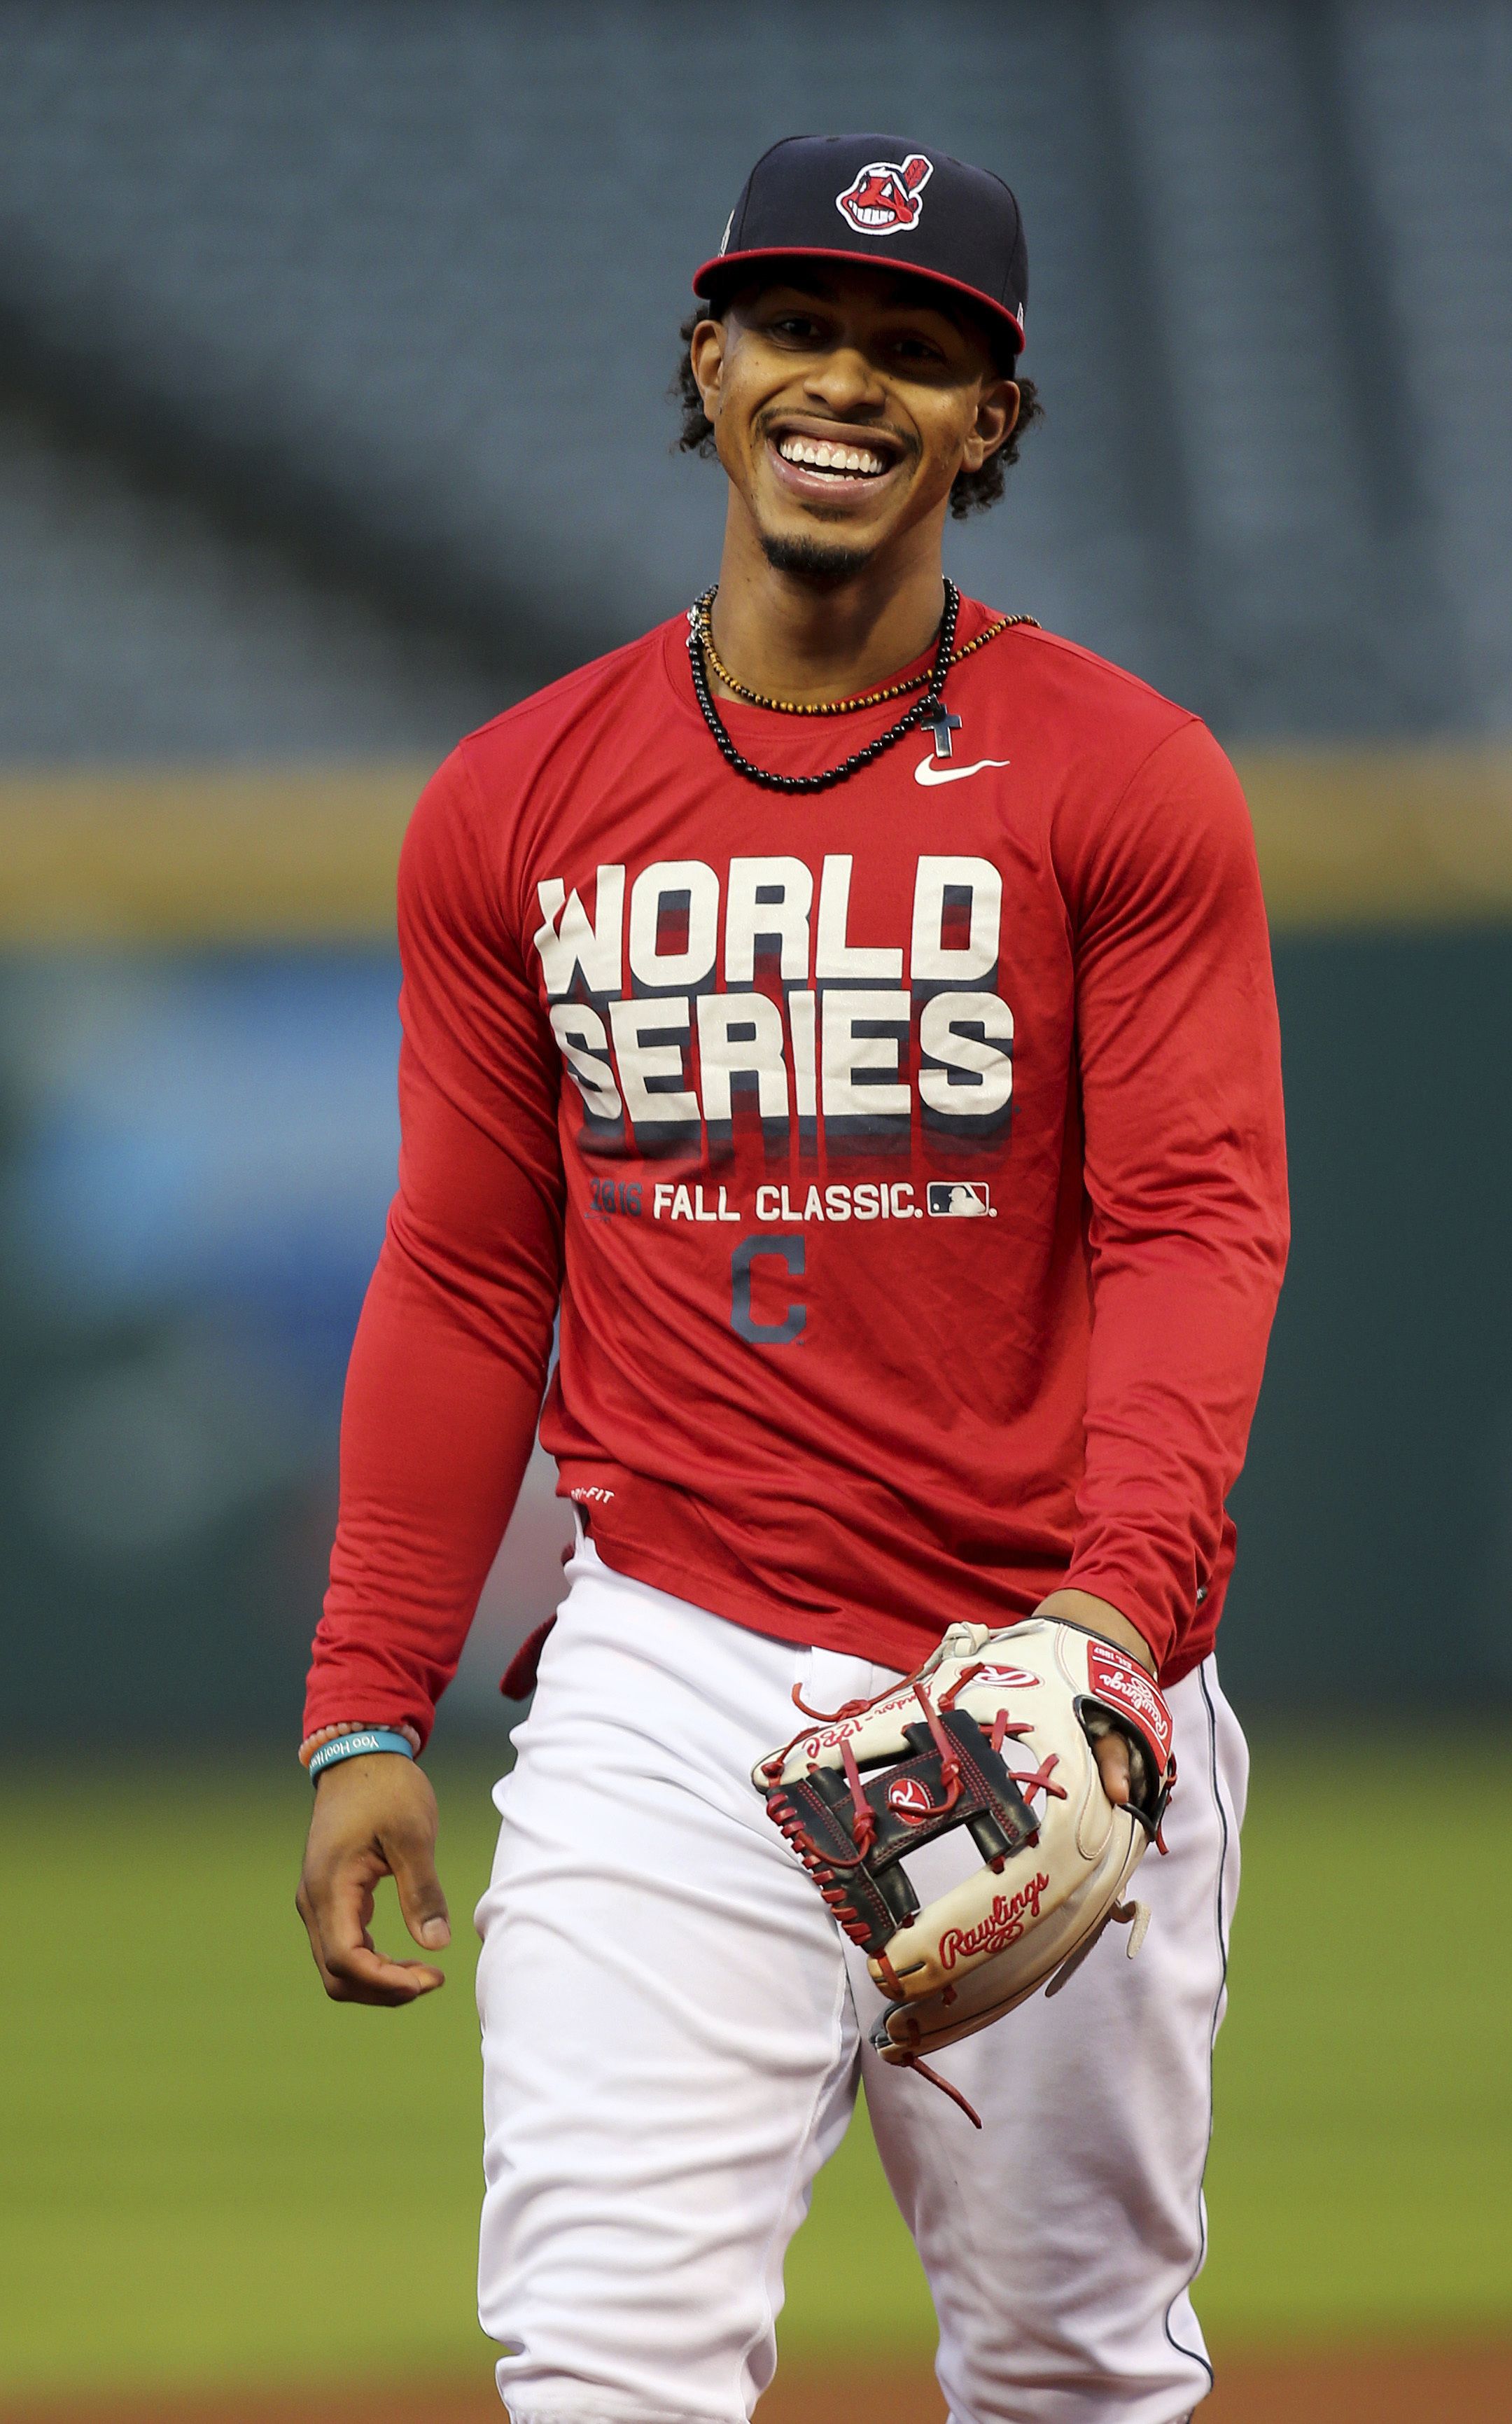 Cleveland Indians Francisco Lindor smiles during a team practice for baseball's upcoming World Serie against the Chicago Cubss, Sunday, Oct. 23, 2016, in Cleveland. (AP Photo/Aaron Josefczyk)